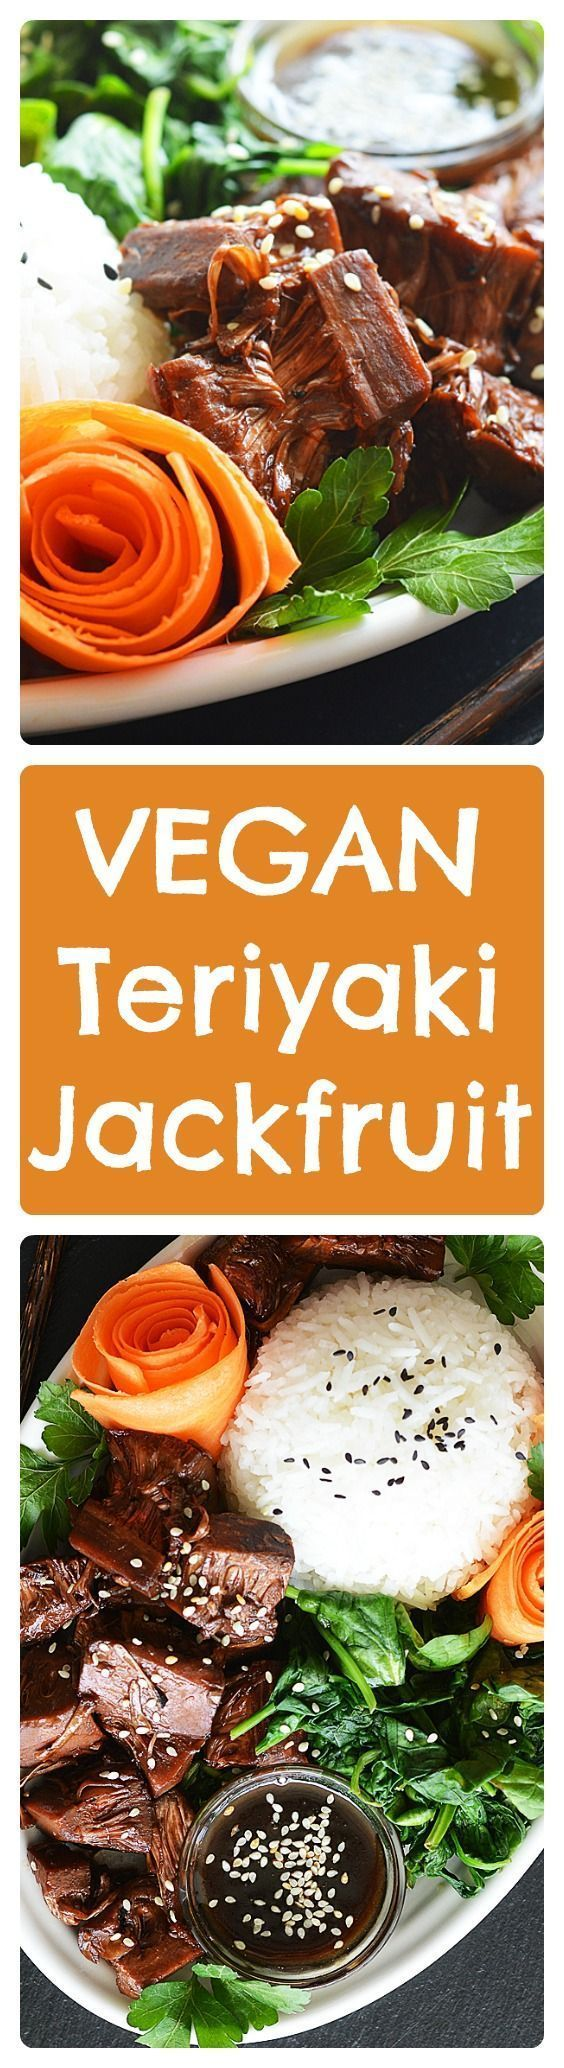 Vegan Teriyaki Jackfruit Bowl by The Veg Life! Jackfruit is sauteed in a Teriyaki sauce which turns into a thick glaze. Serve with white rice, sauteed spinach and carrot roses to complete your bowl! For more jackfruit recipes, visit http://theveglife.com #cookingwithcurlsrecipes